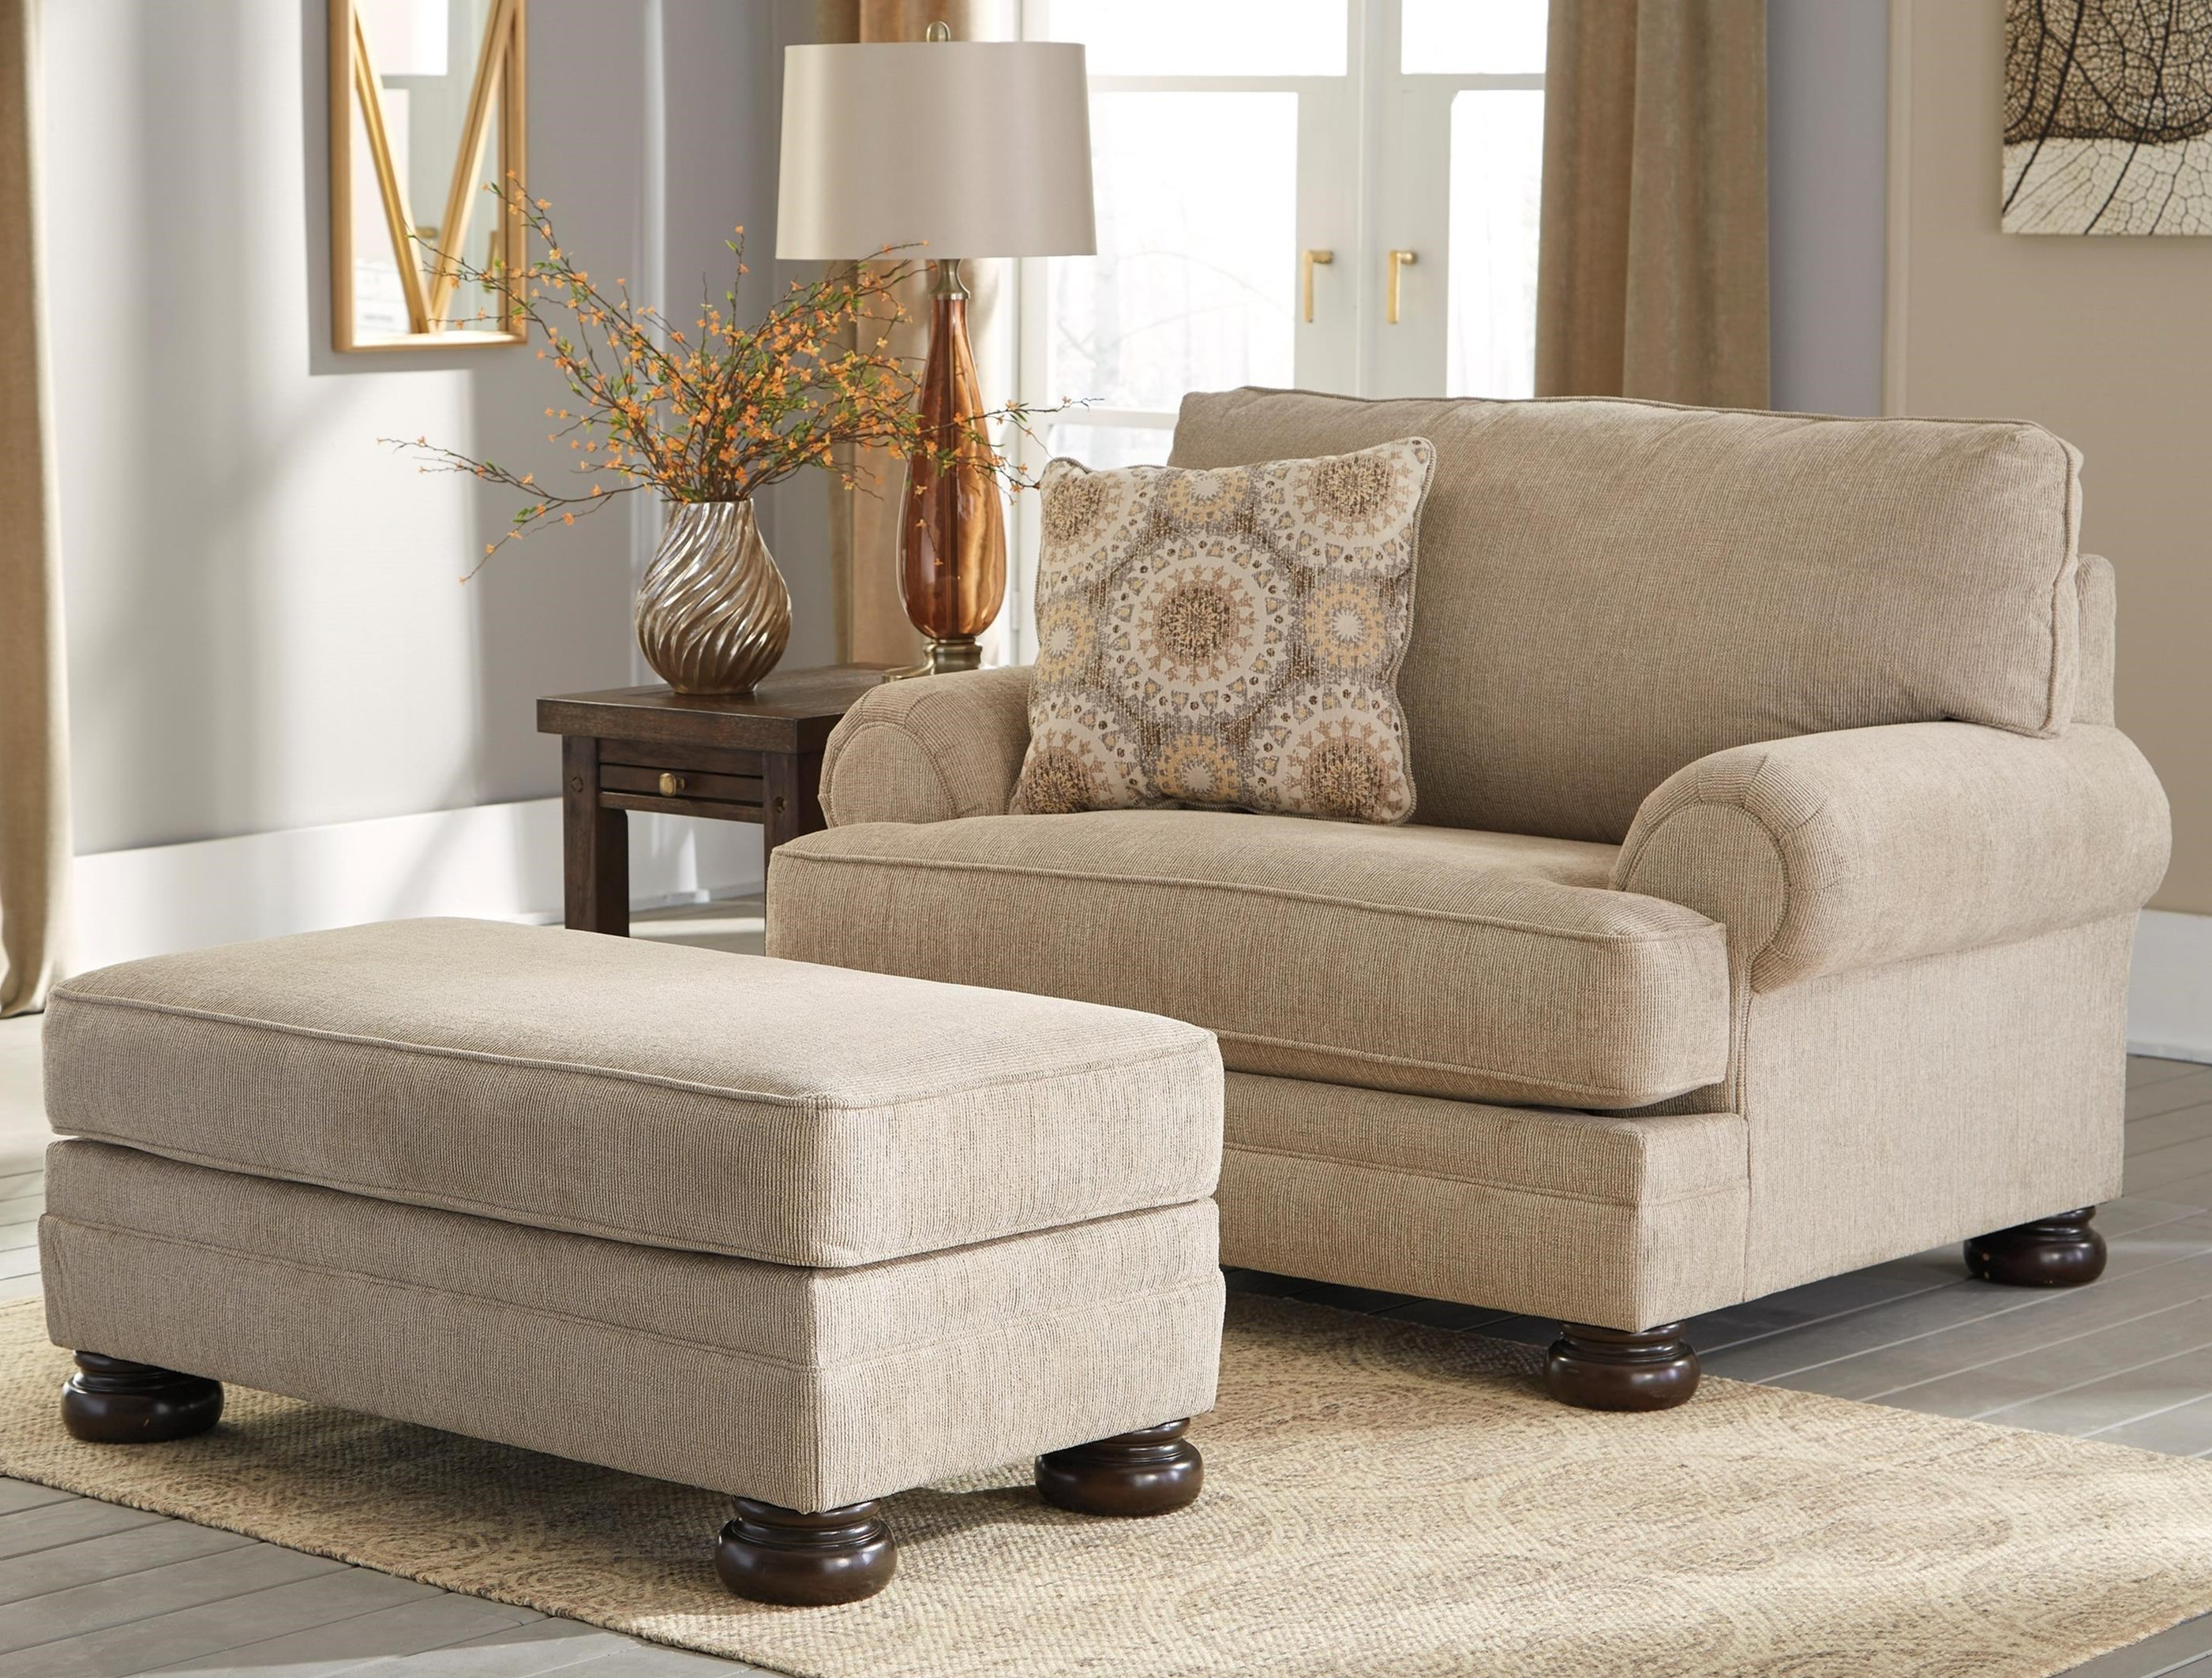 Benchcraft Quarry Hill Chair And A Half Ottoman Furniture Superstore Nm Chair Ottoman Sets